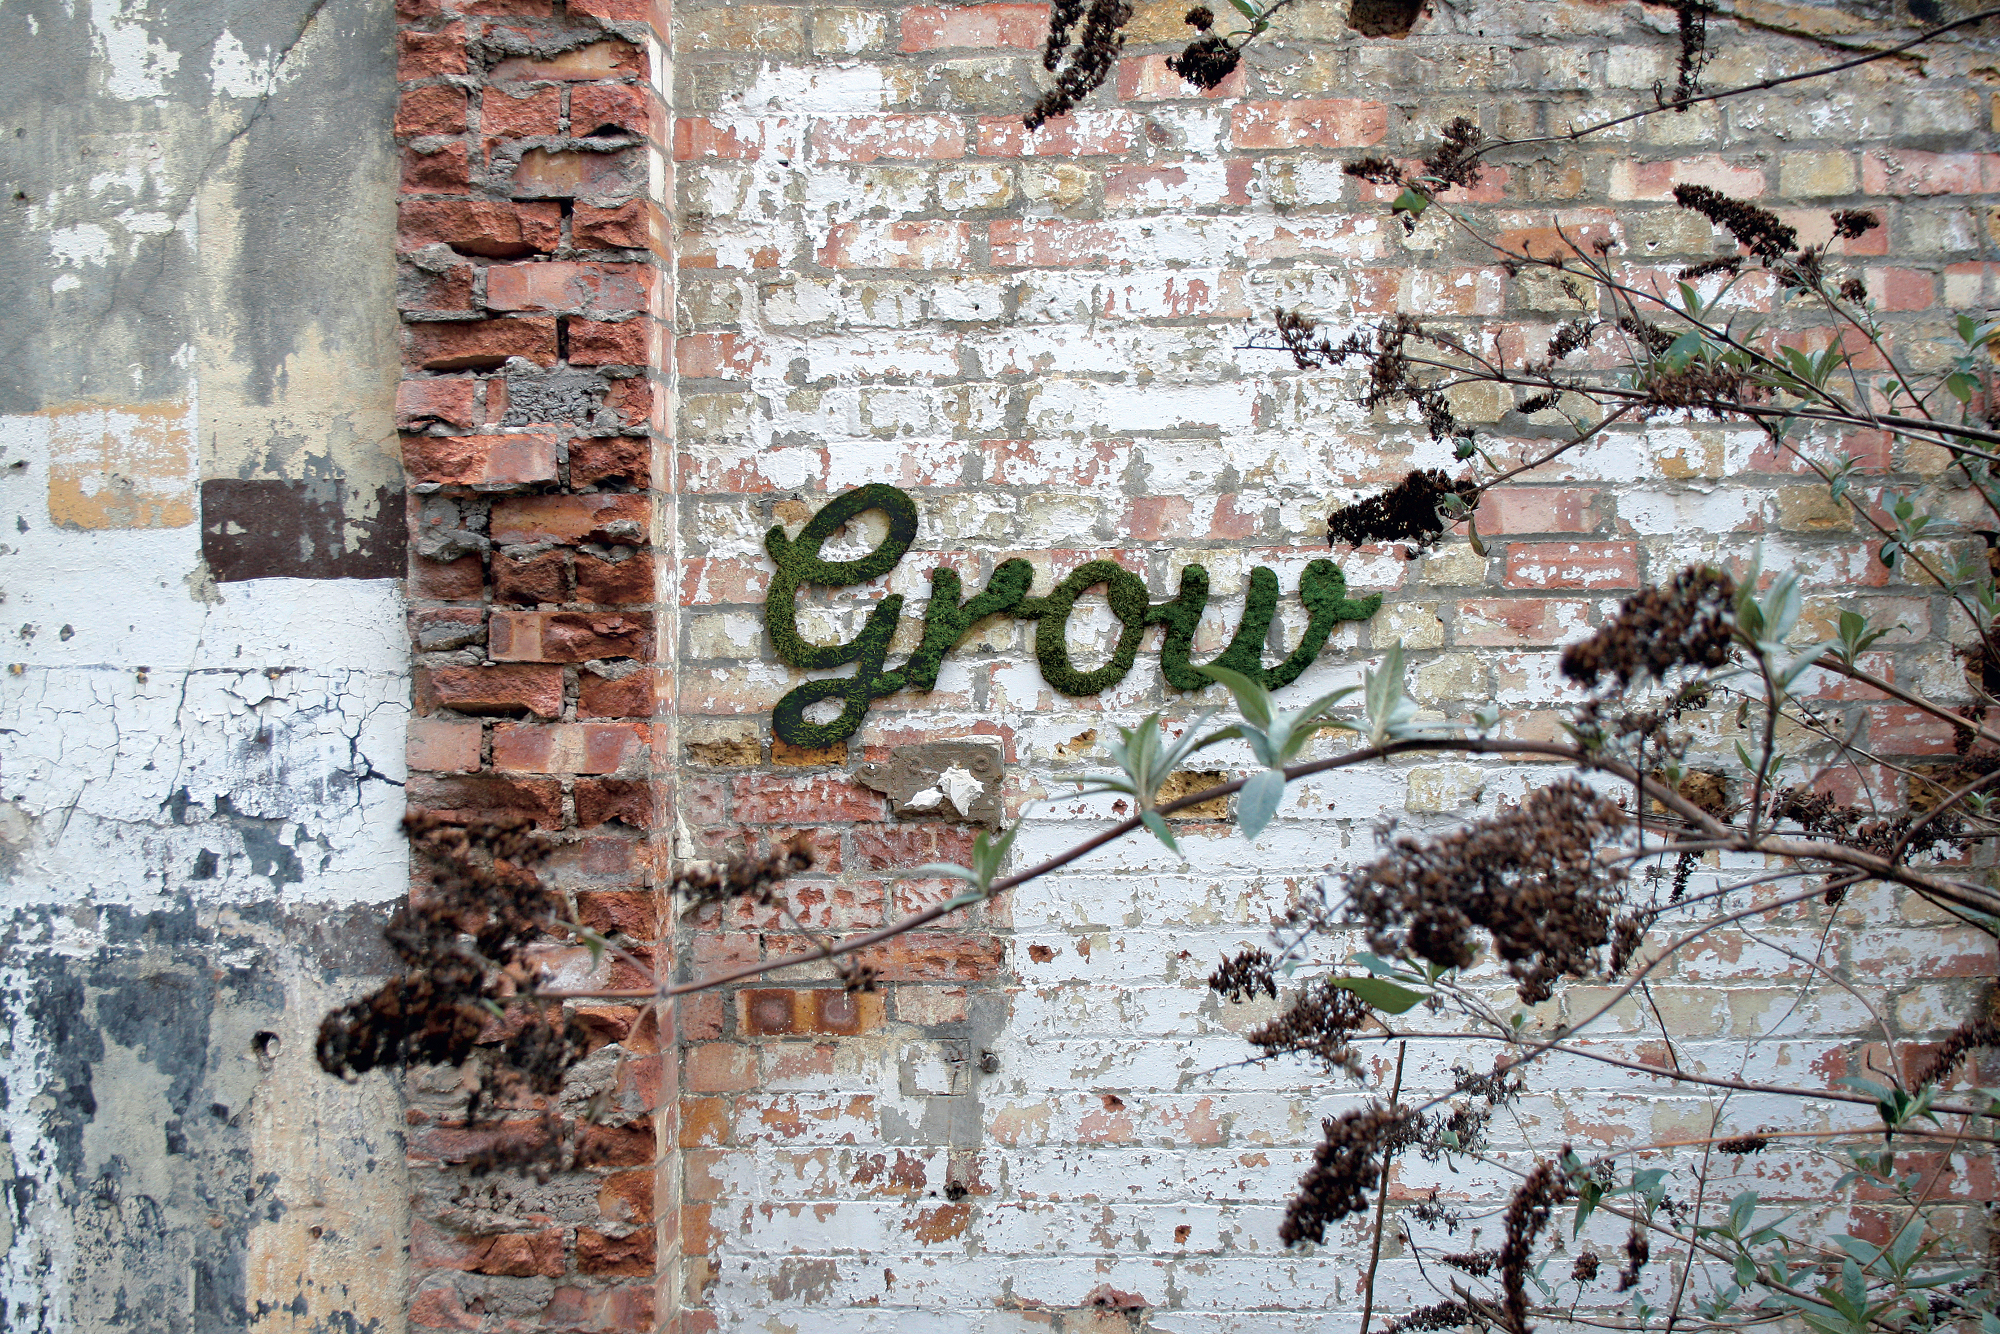 """Grow"", London, England, 2012, Moos, S. 52 © Anna Garforth / Street Art Reloaded, Prestel 2015"